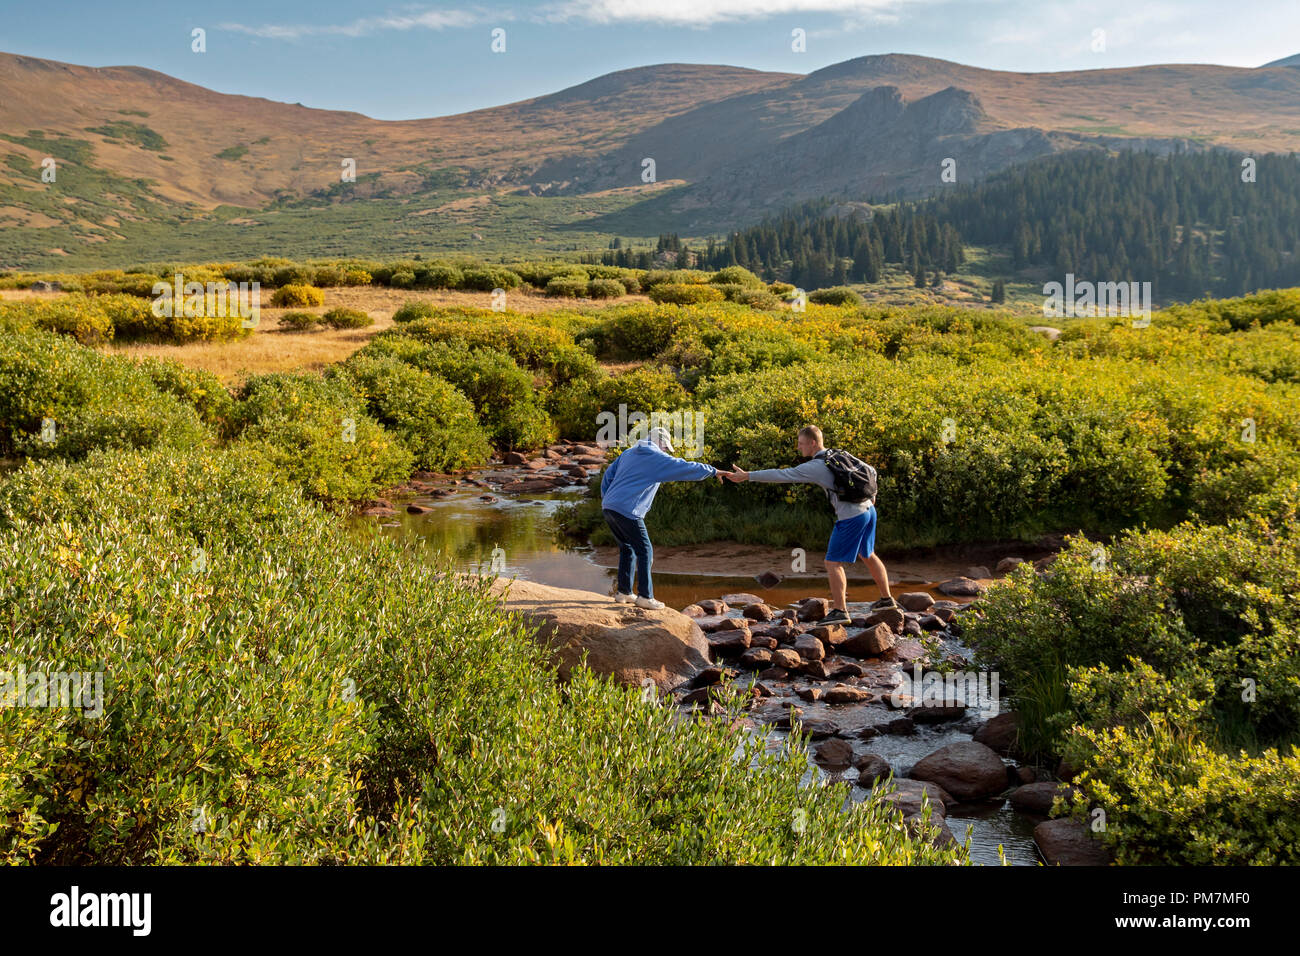 Georgetown, Colorado - An older woman gets help from a younger man in crossing a stream on the trail from Guanella Pass to 14,060-foot Mt. Bierstadt i - Stock Image